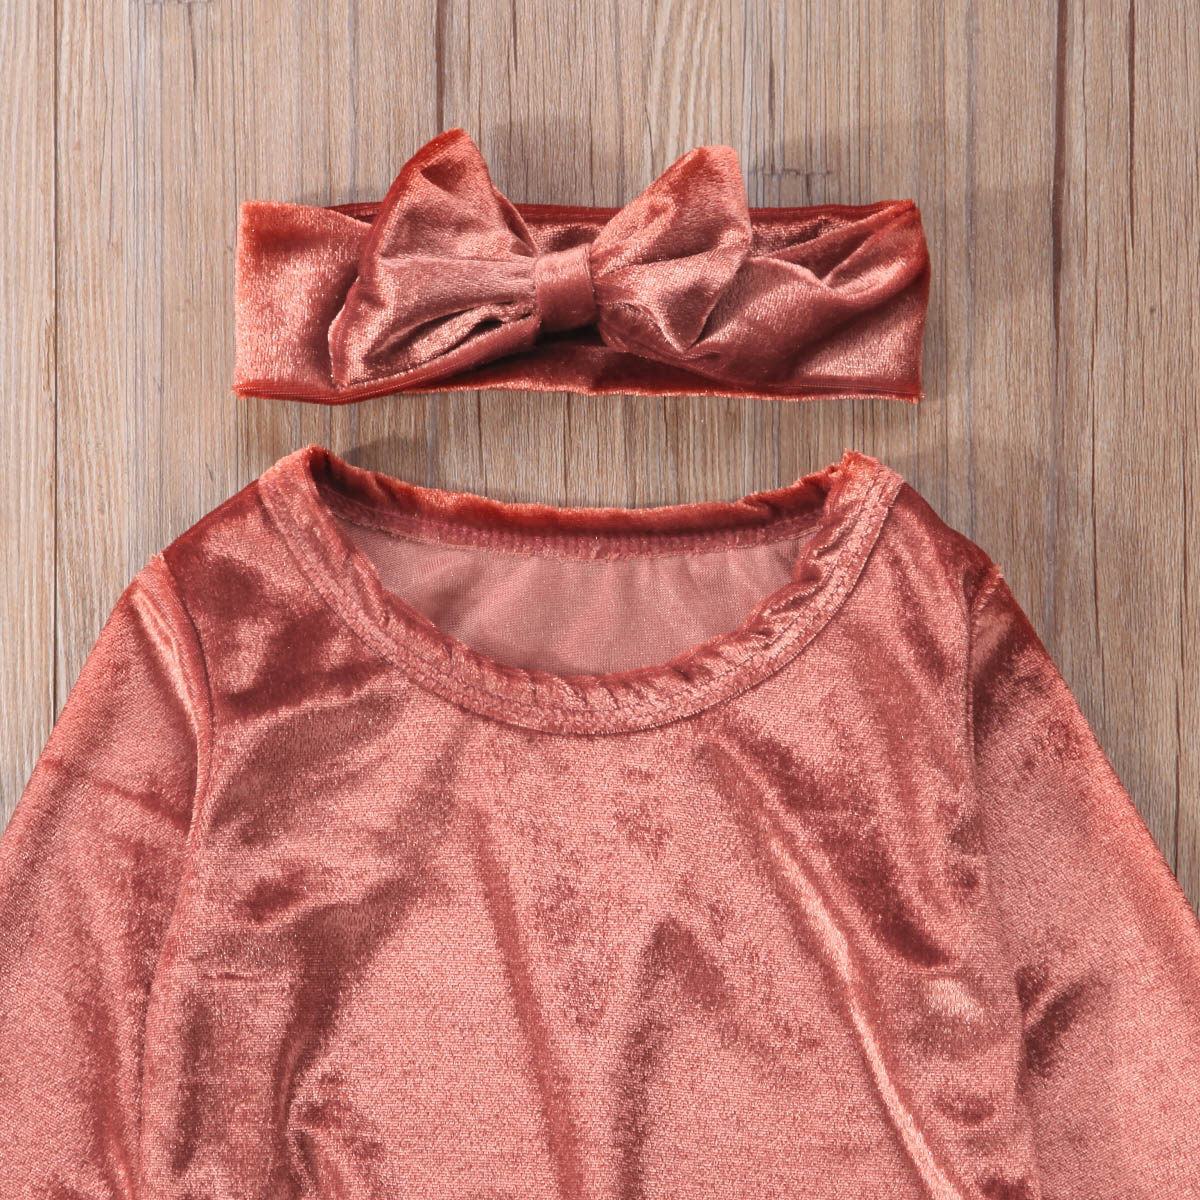 Spring Newborn Baby Girls Comfortable Sweet Sweatshirt Outfits Cloths Velvet Tops+Pants Holiday Casual Party Set 0-24M